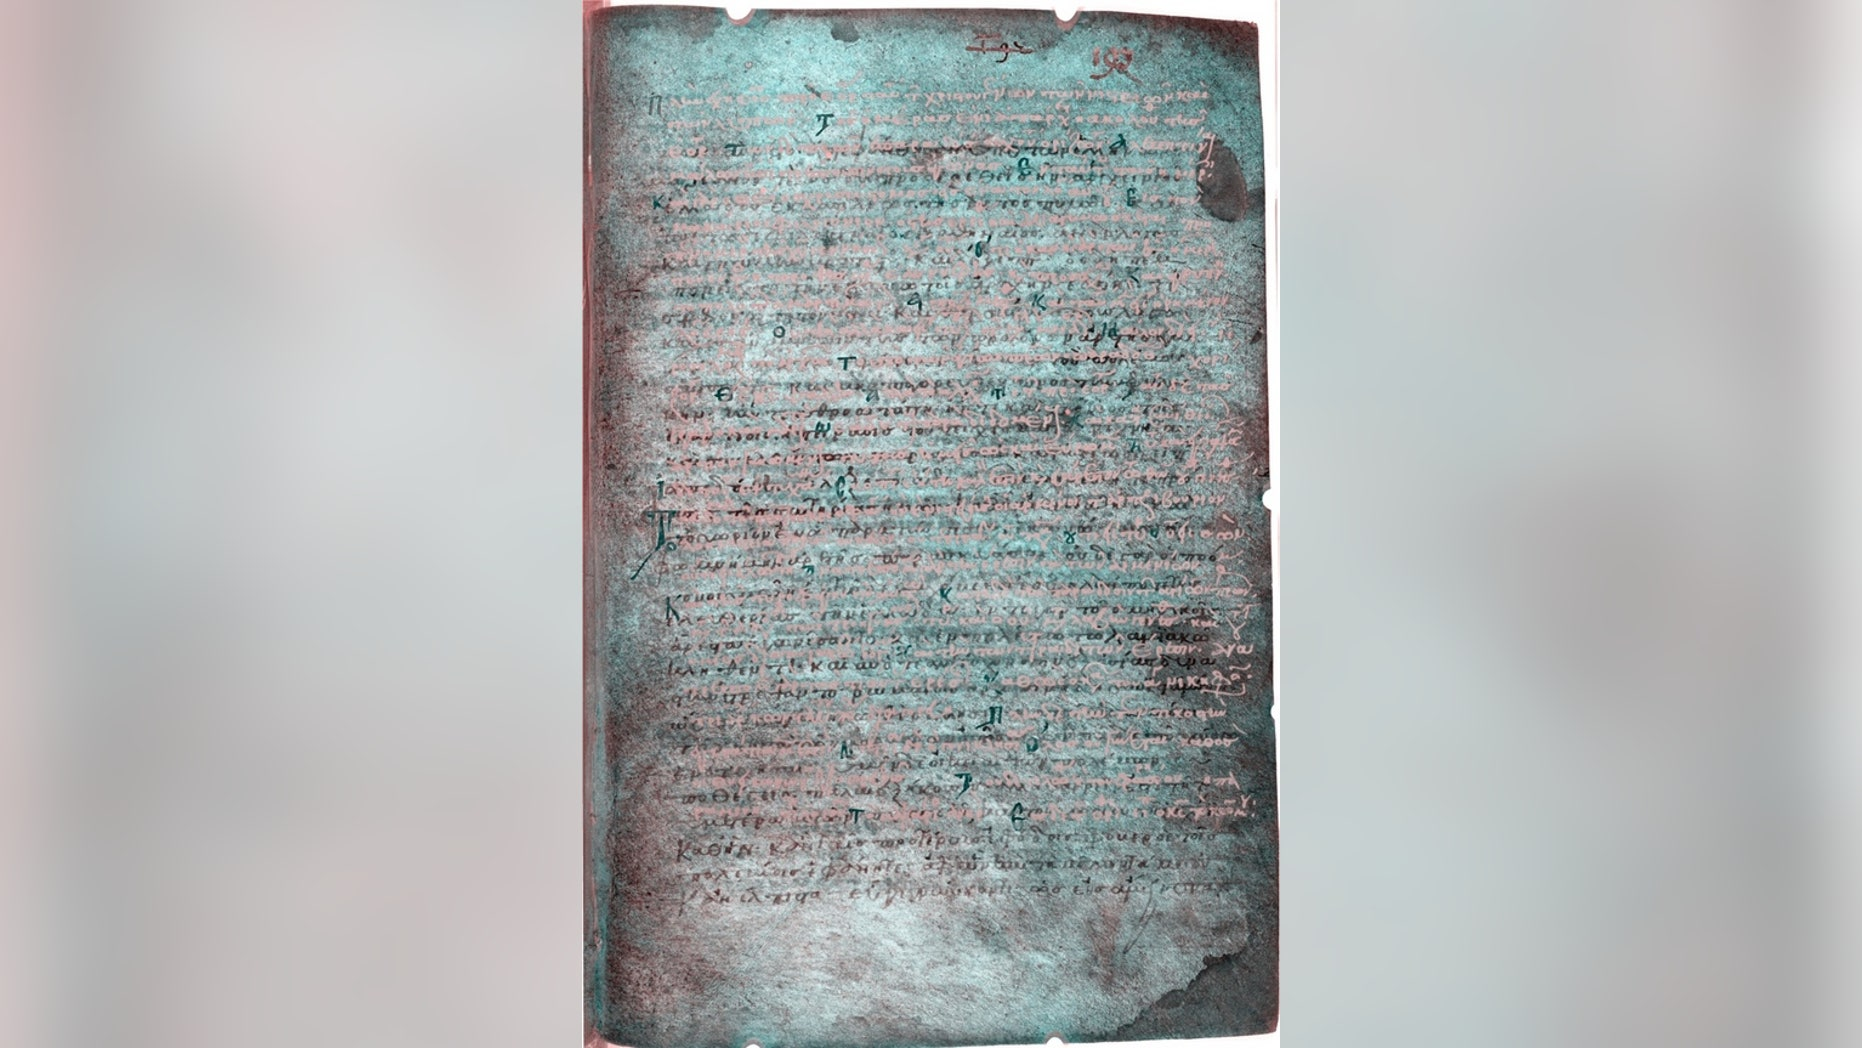 Researchers used spectral imaging to read the writing on this fragment, which details the third-century Thermopylae battle.